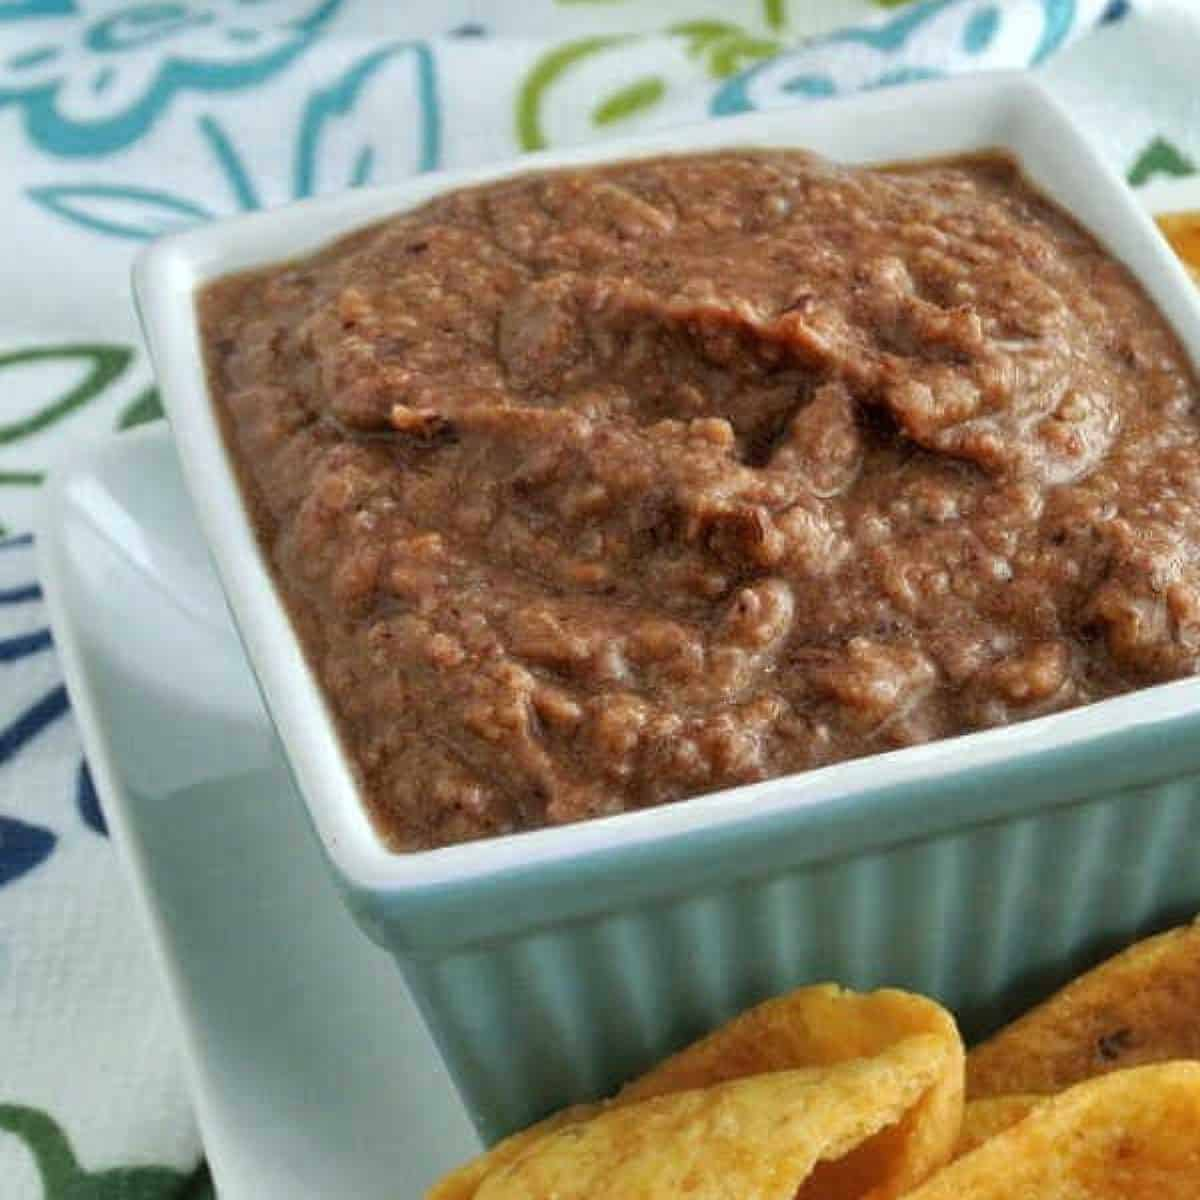 Our Vegan Christmas recipes list stars Black bean dip in a bowl with chips.